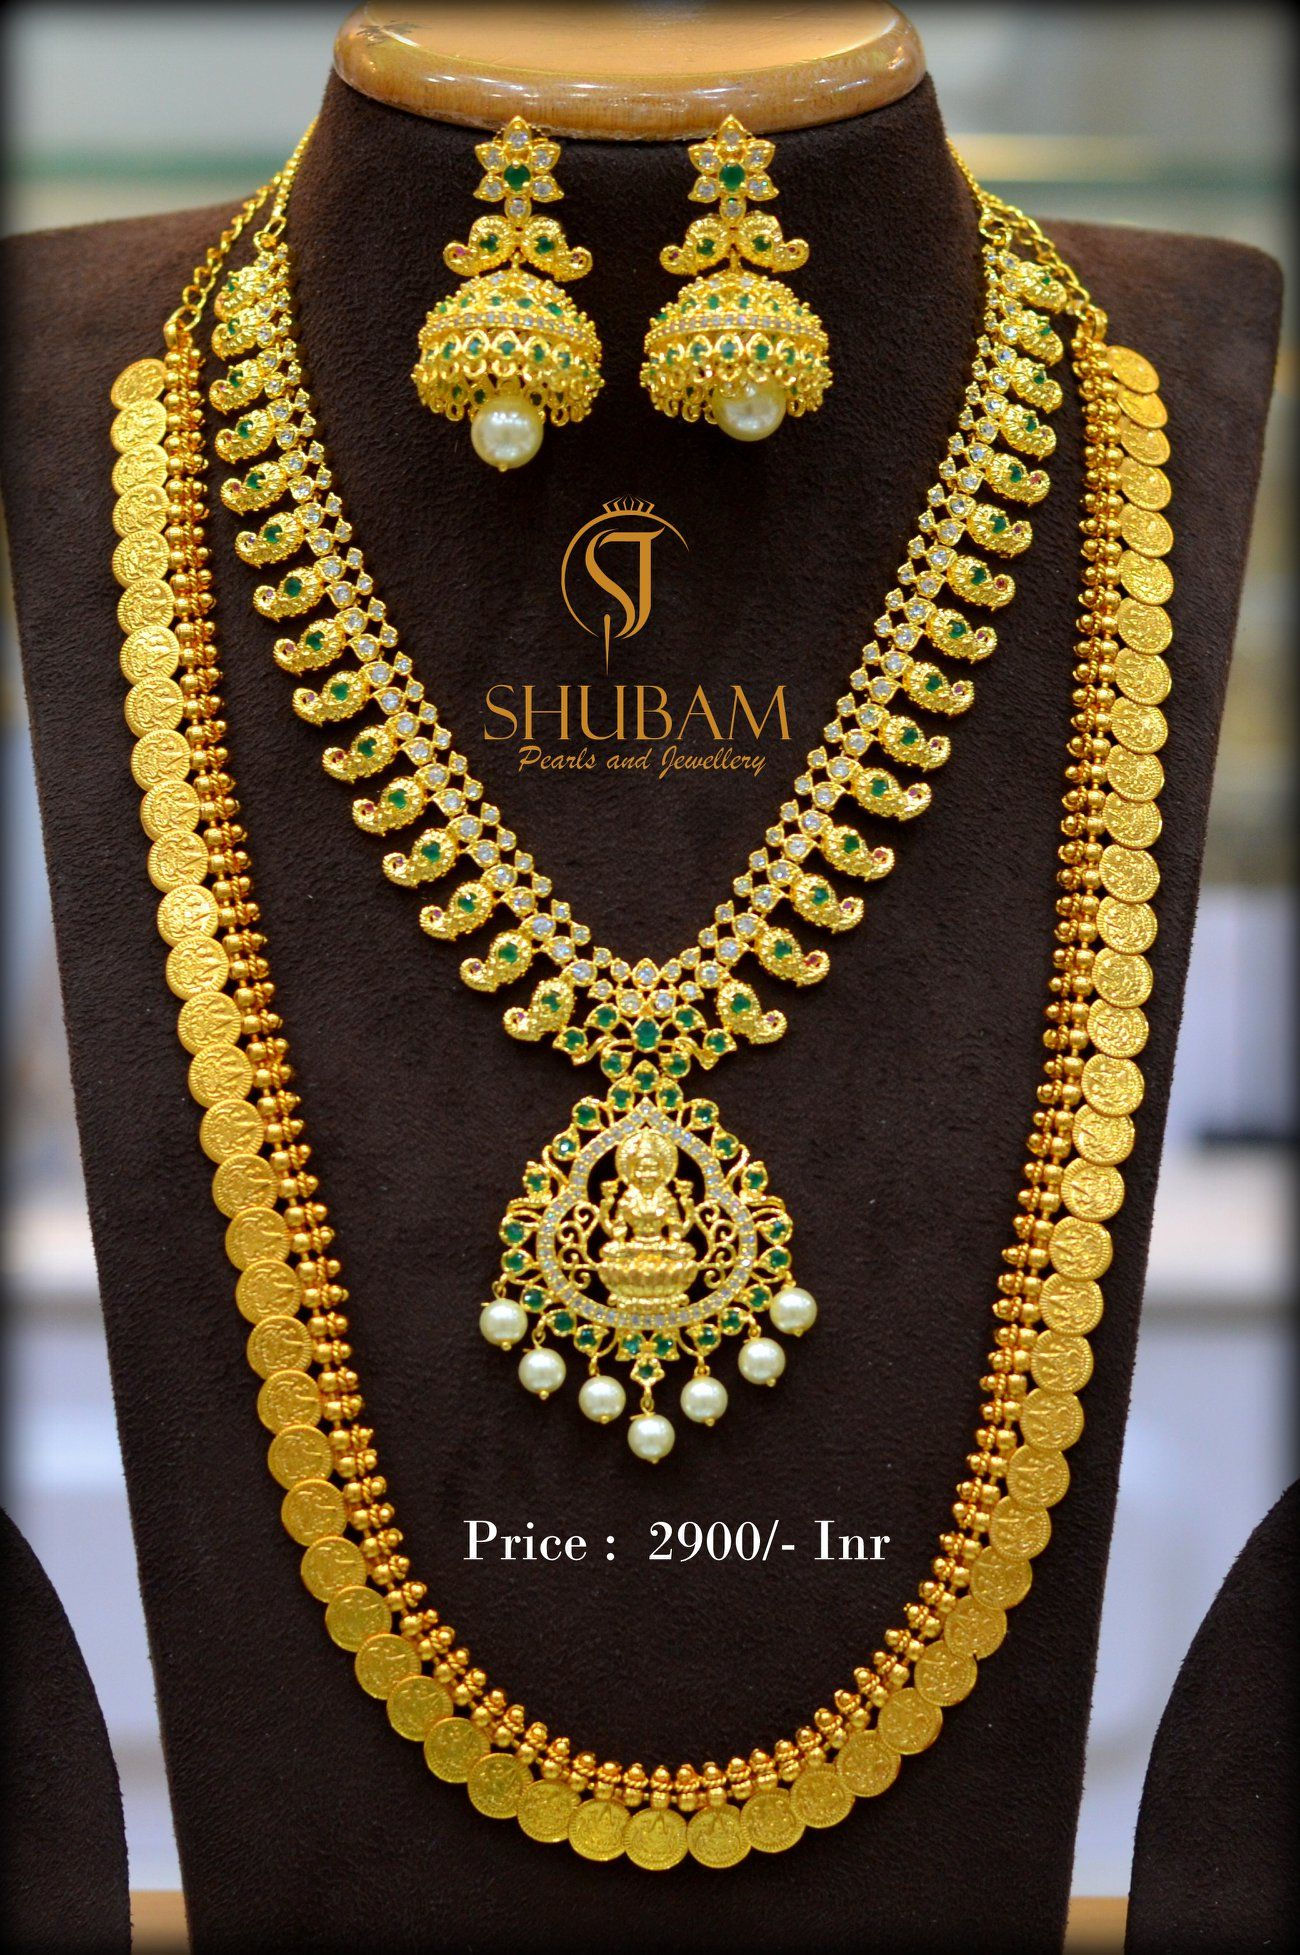 0d895491bb Beautiful one gram gold long haaram with mango design and lakshmi devi  pendant. Long haaram studded with green color stones. Long haaram with  lakshmi devi ...